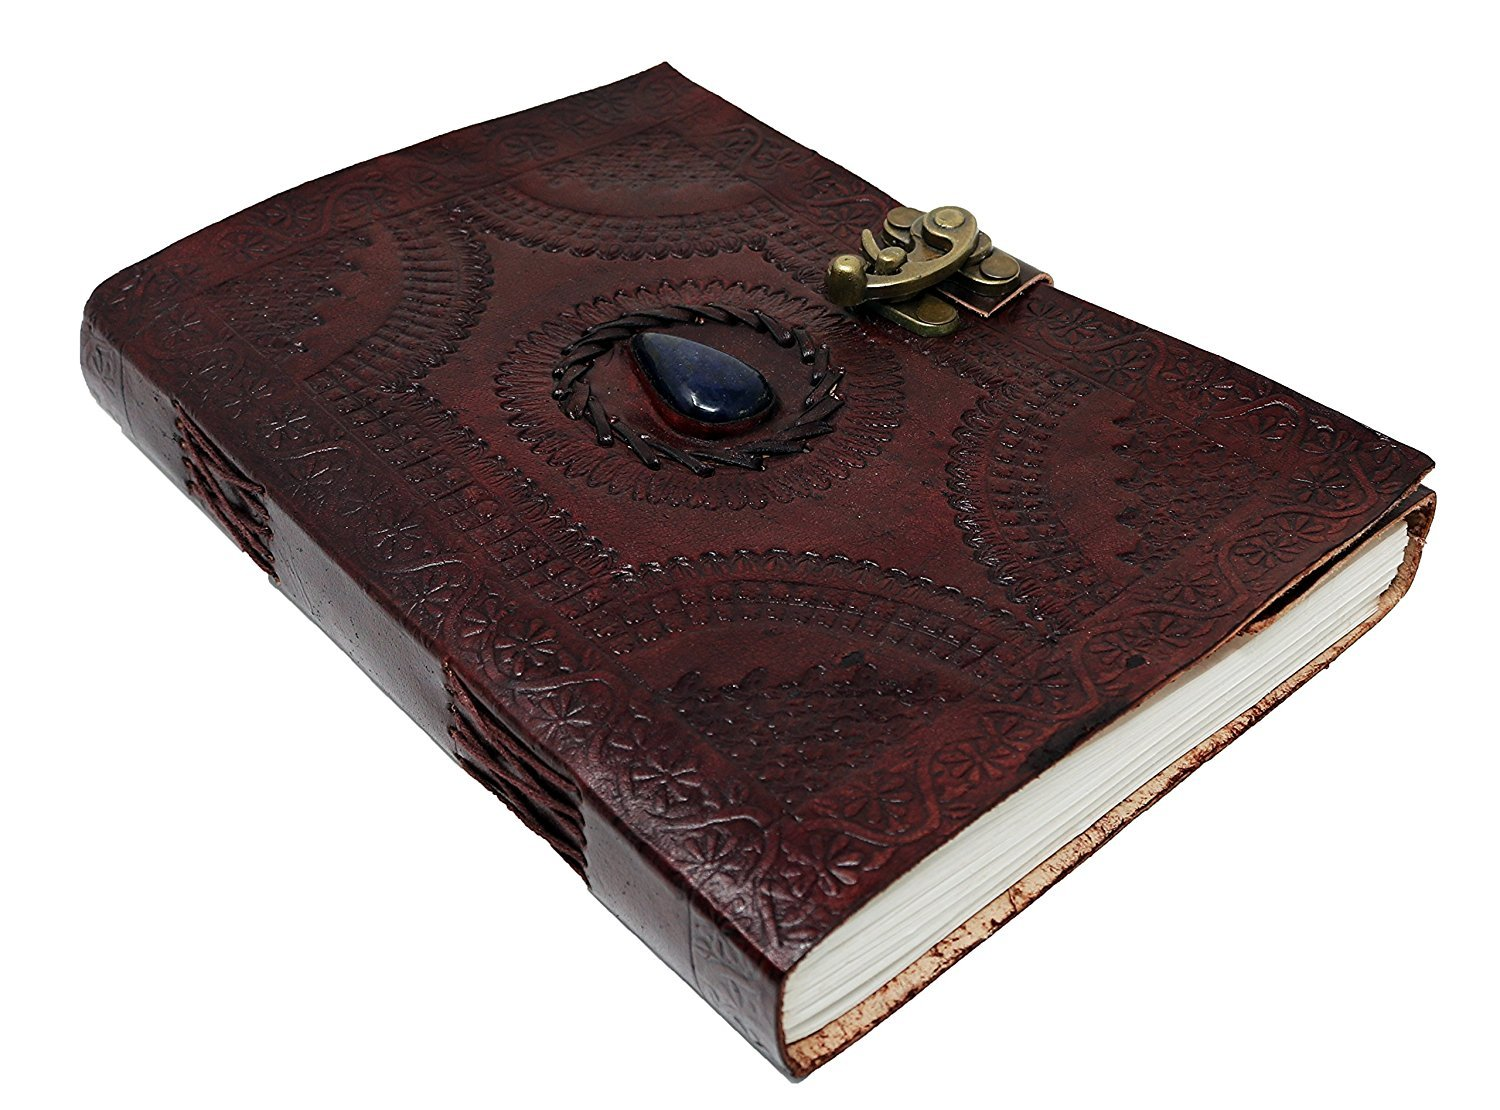 Large Leather Journal Celtic book of shadows blue stone blank refillable personal Diary with lock gift for writers jaald BLU-Stone-Large